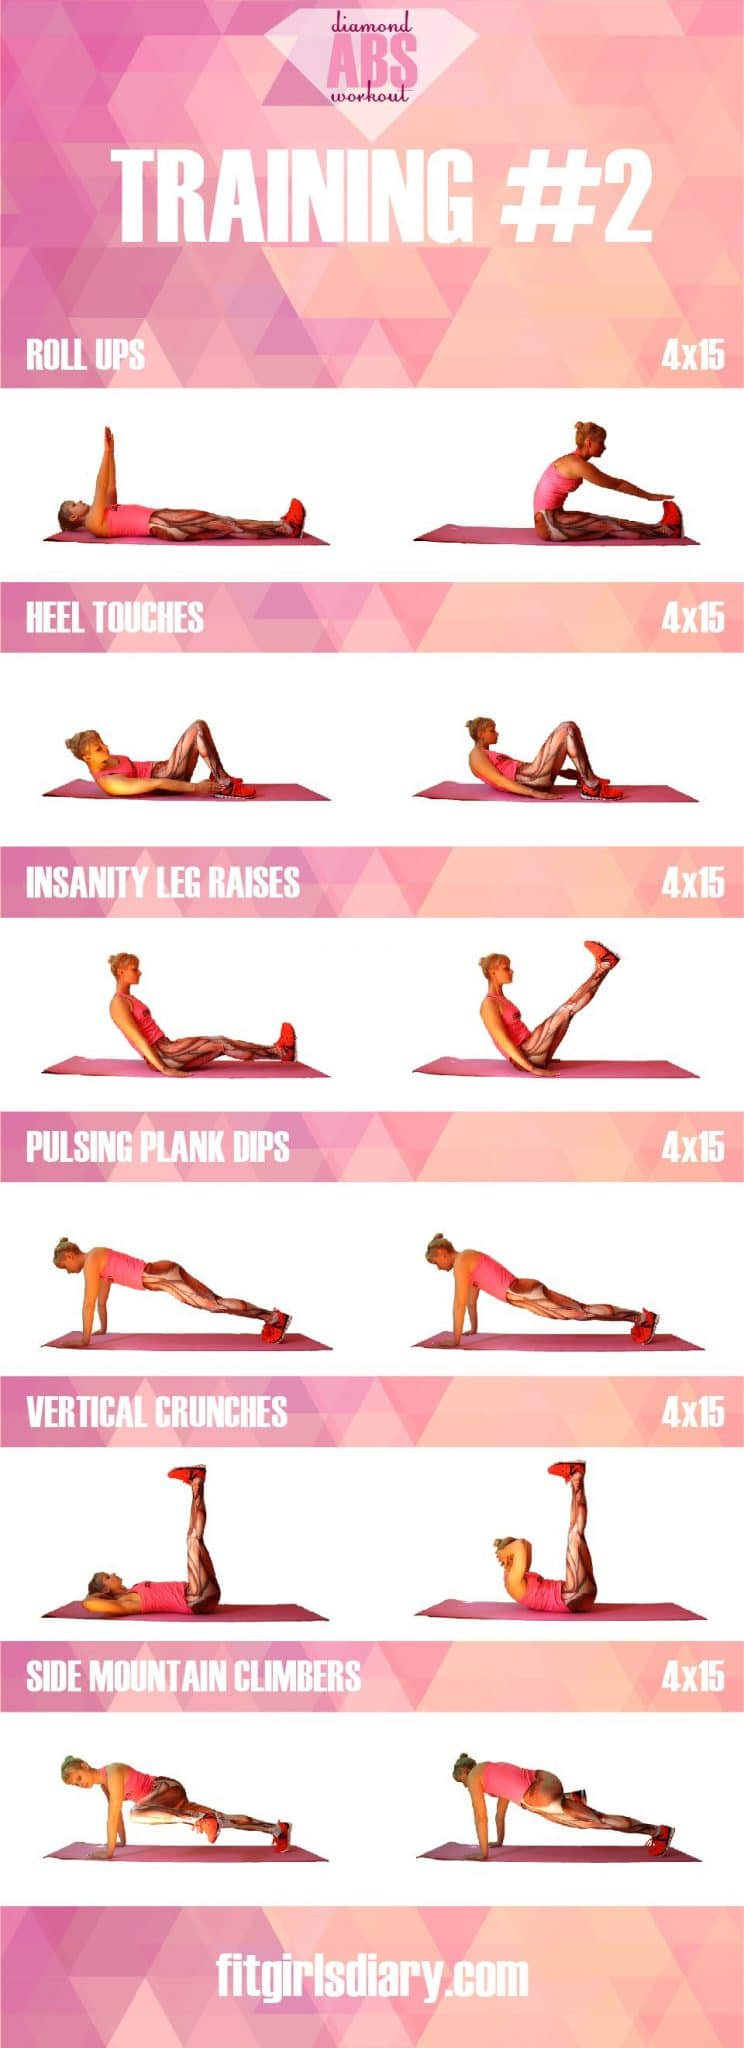 training #2 Diamond Abs Workout - The Best Ab Exercises for Women